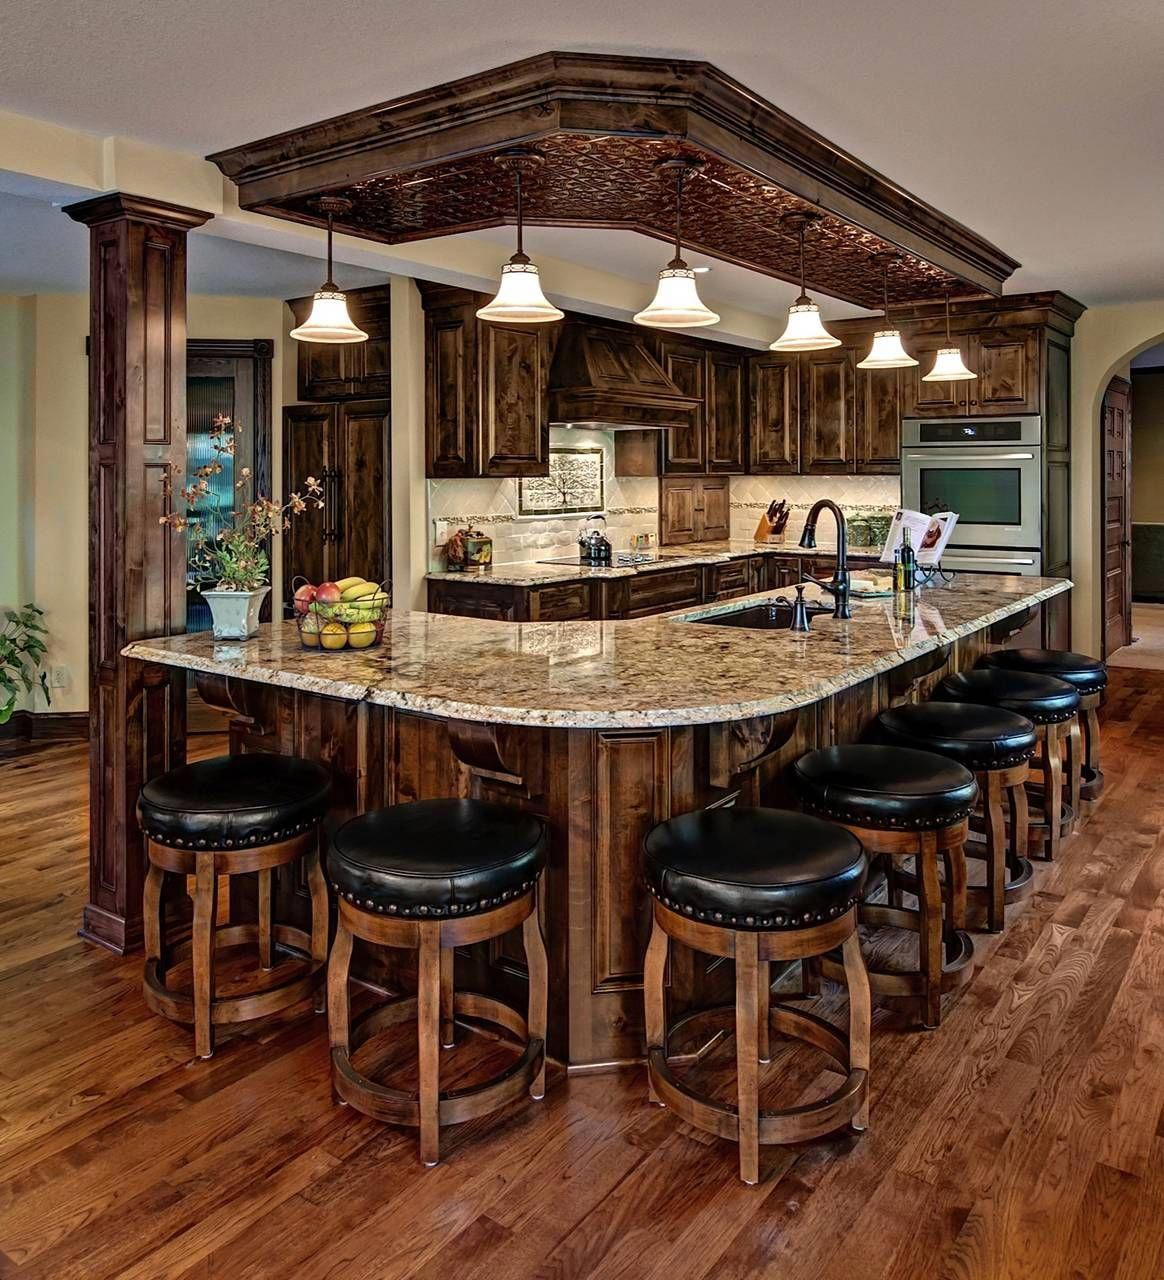 If you are able perform your own kitchen redesigning for Mobilia kitchen table